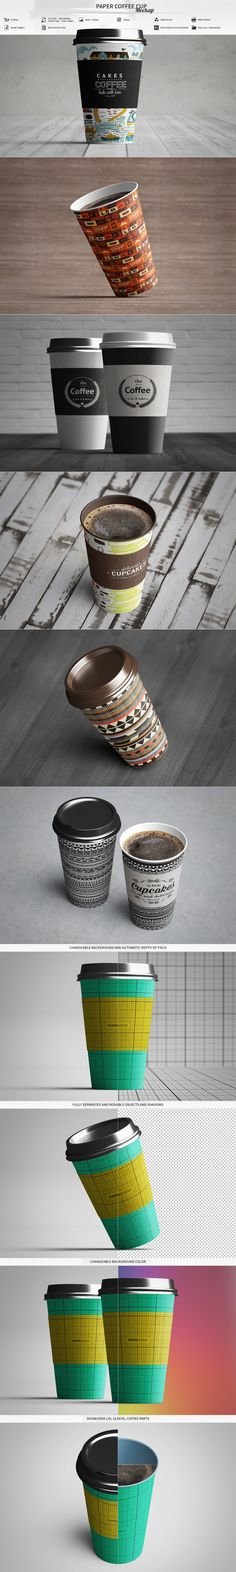 Paper Coffee Cup Mockup by MassDream on @creativemarket